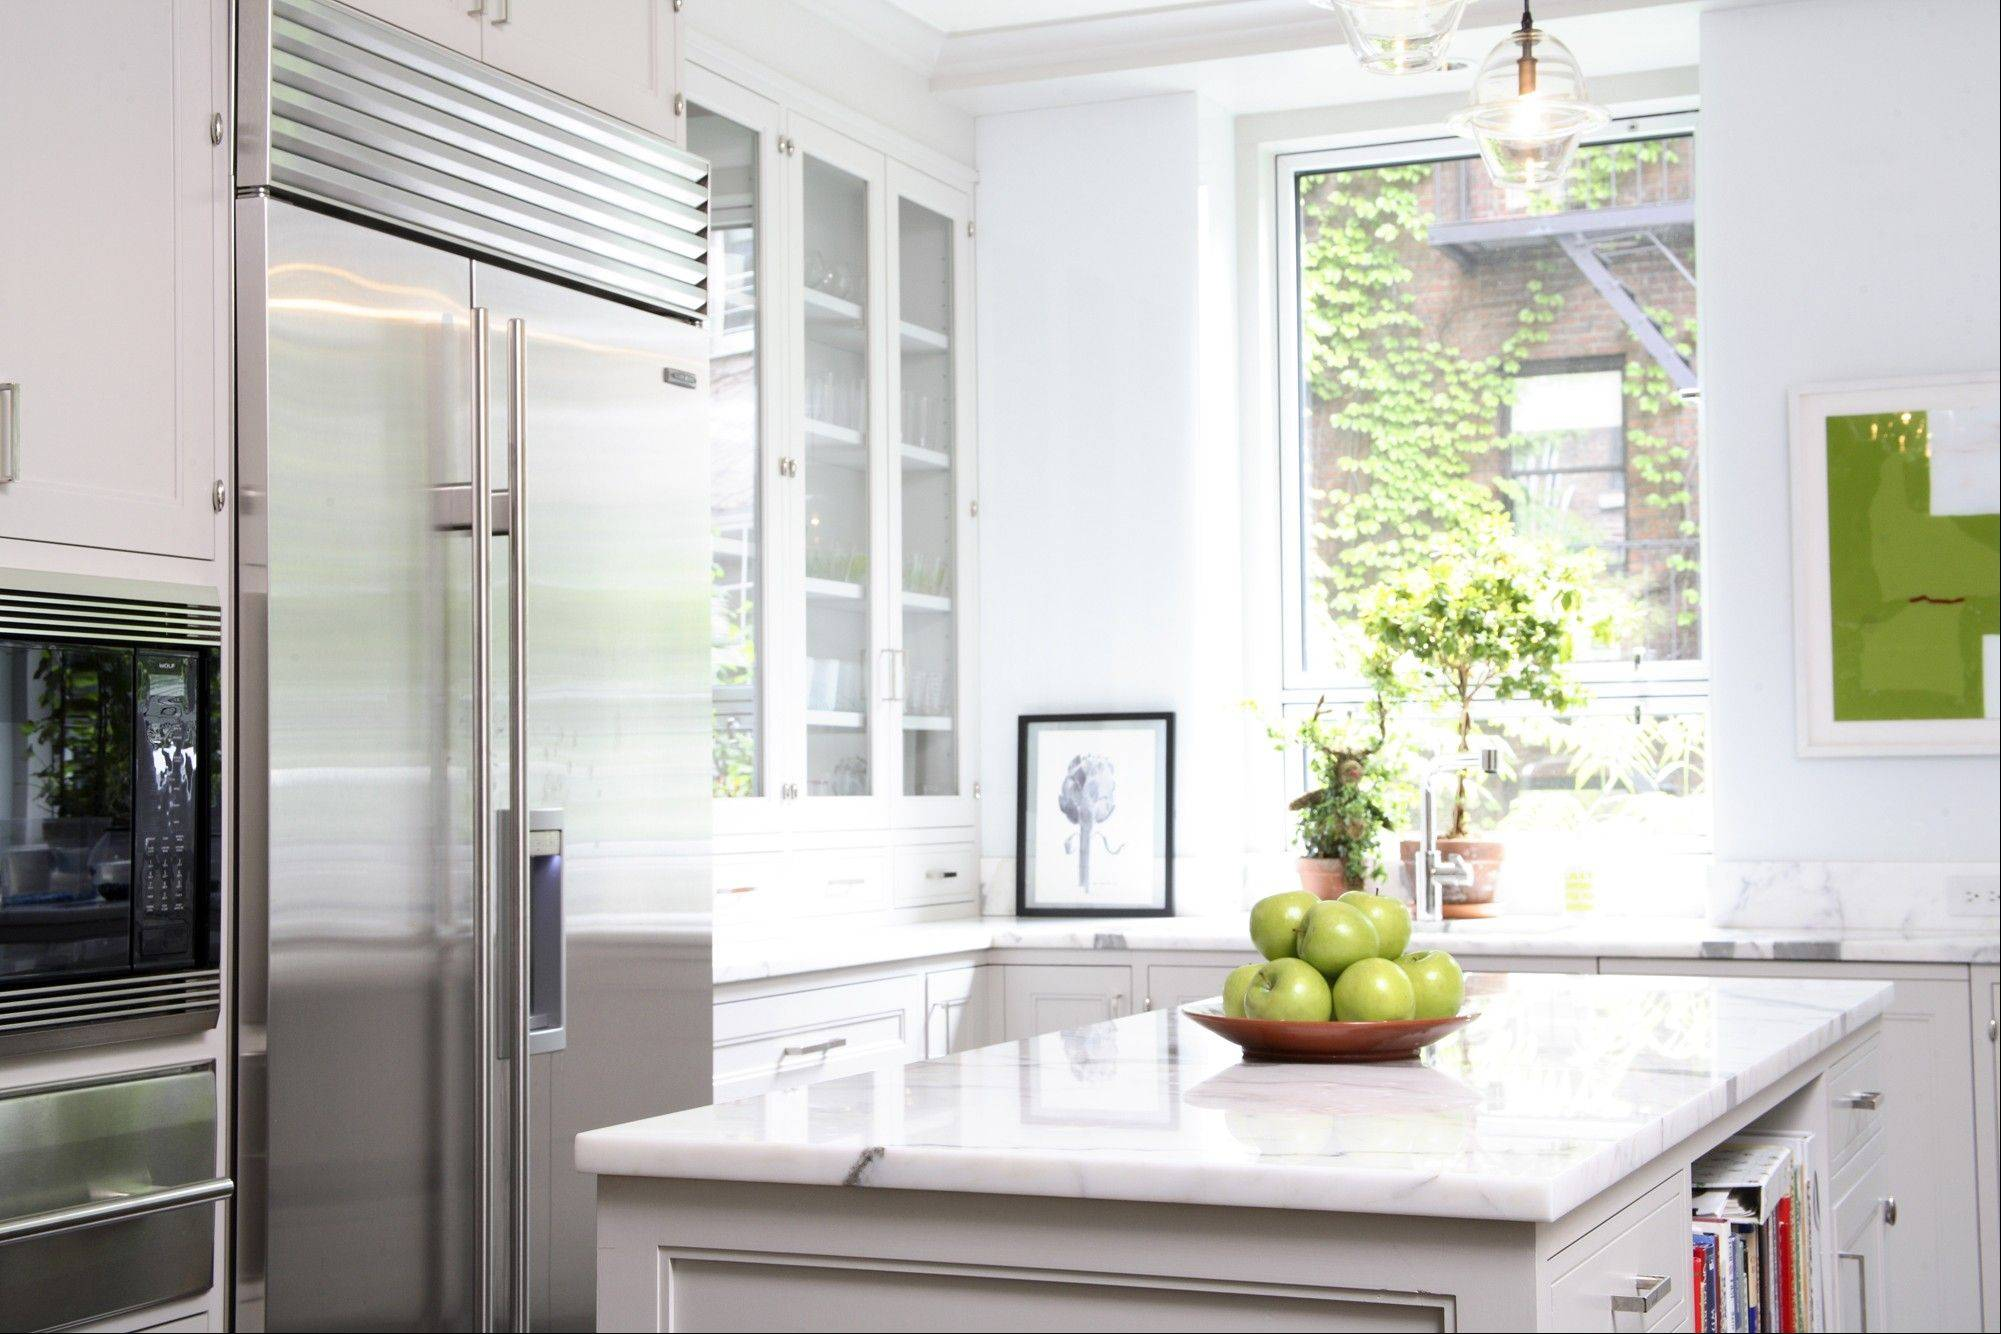 Decorator Connie Newberry worked with architect Sam Mitchell on this traditional kitchen with modern twists.